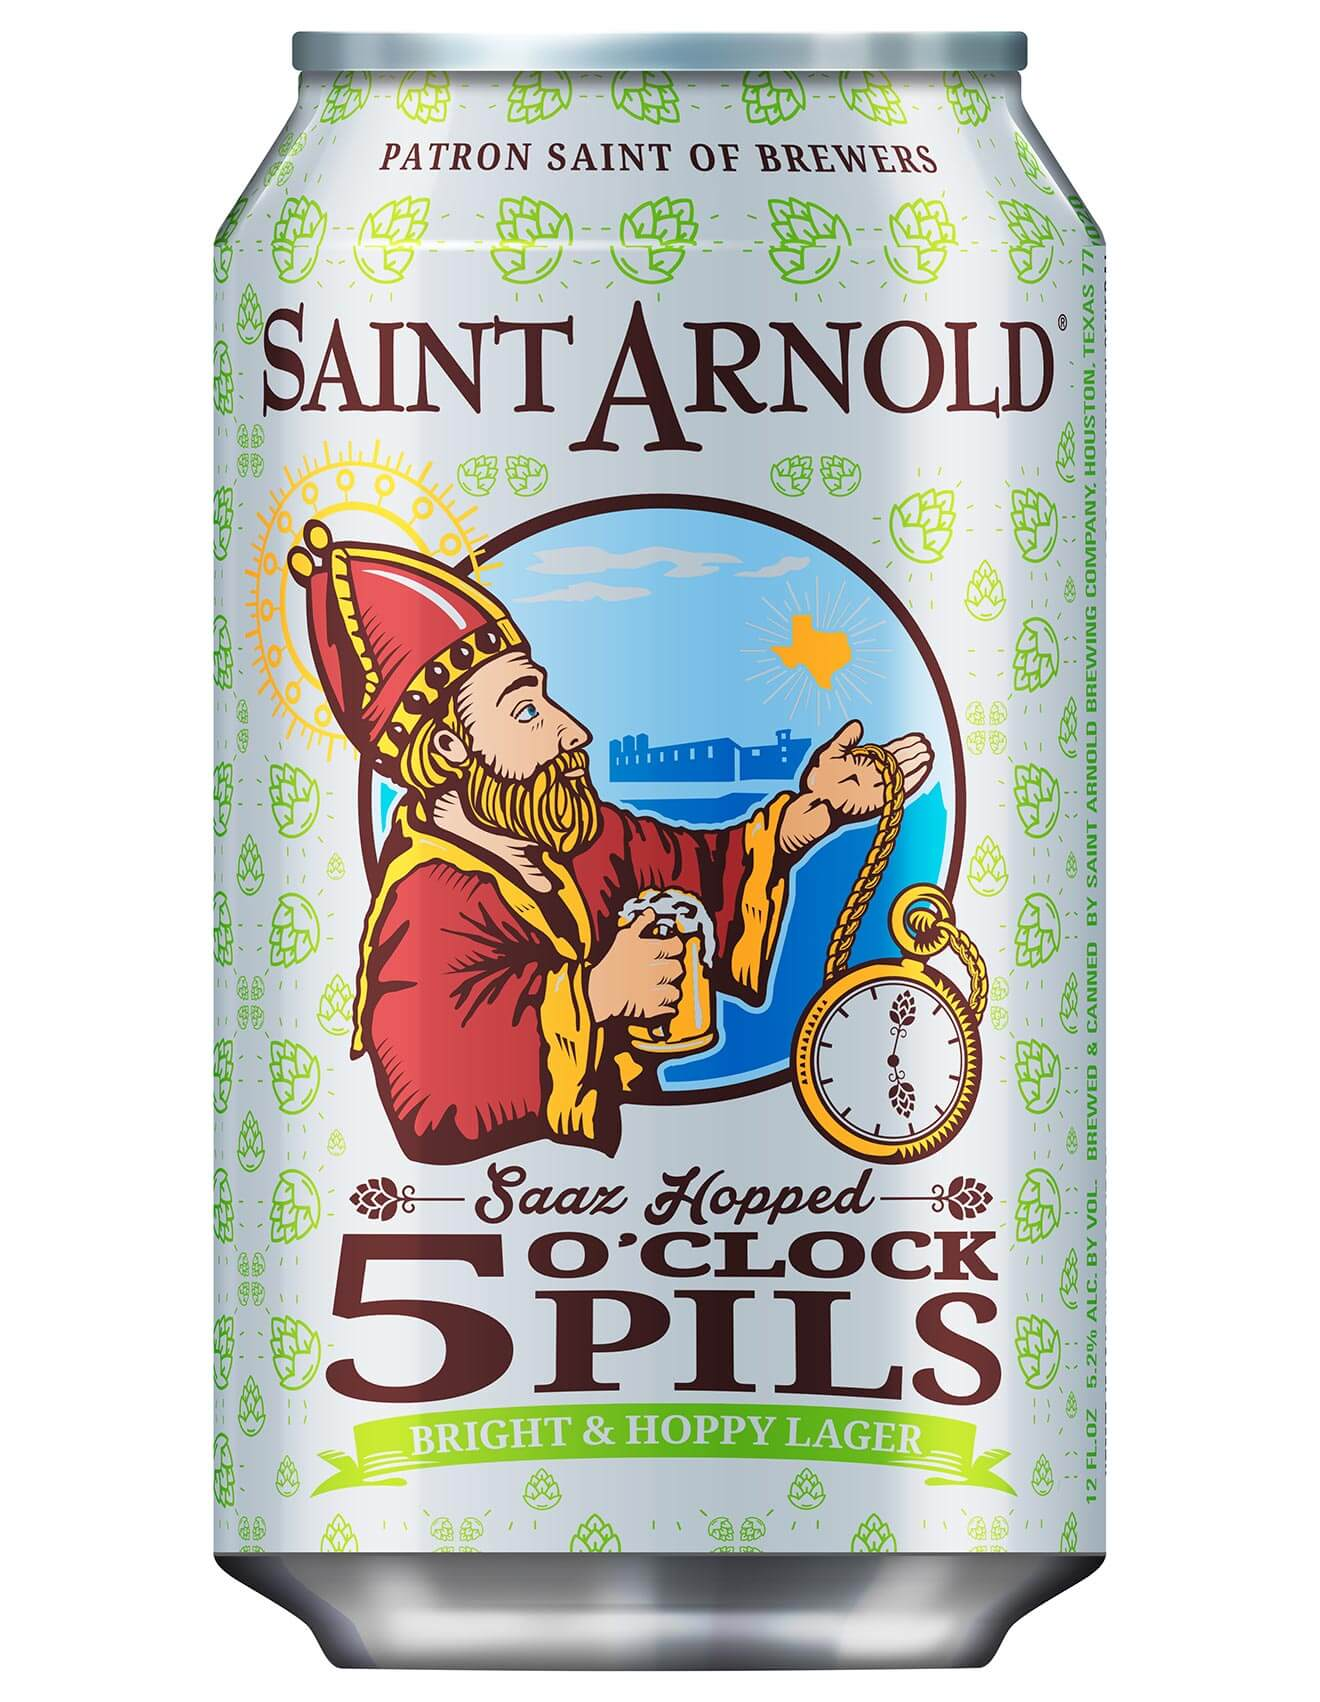 Saint Arnold 5 O'Clock Pils in a Can, beer news